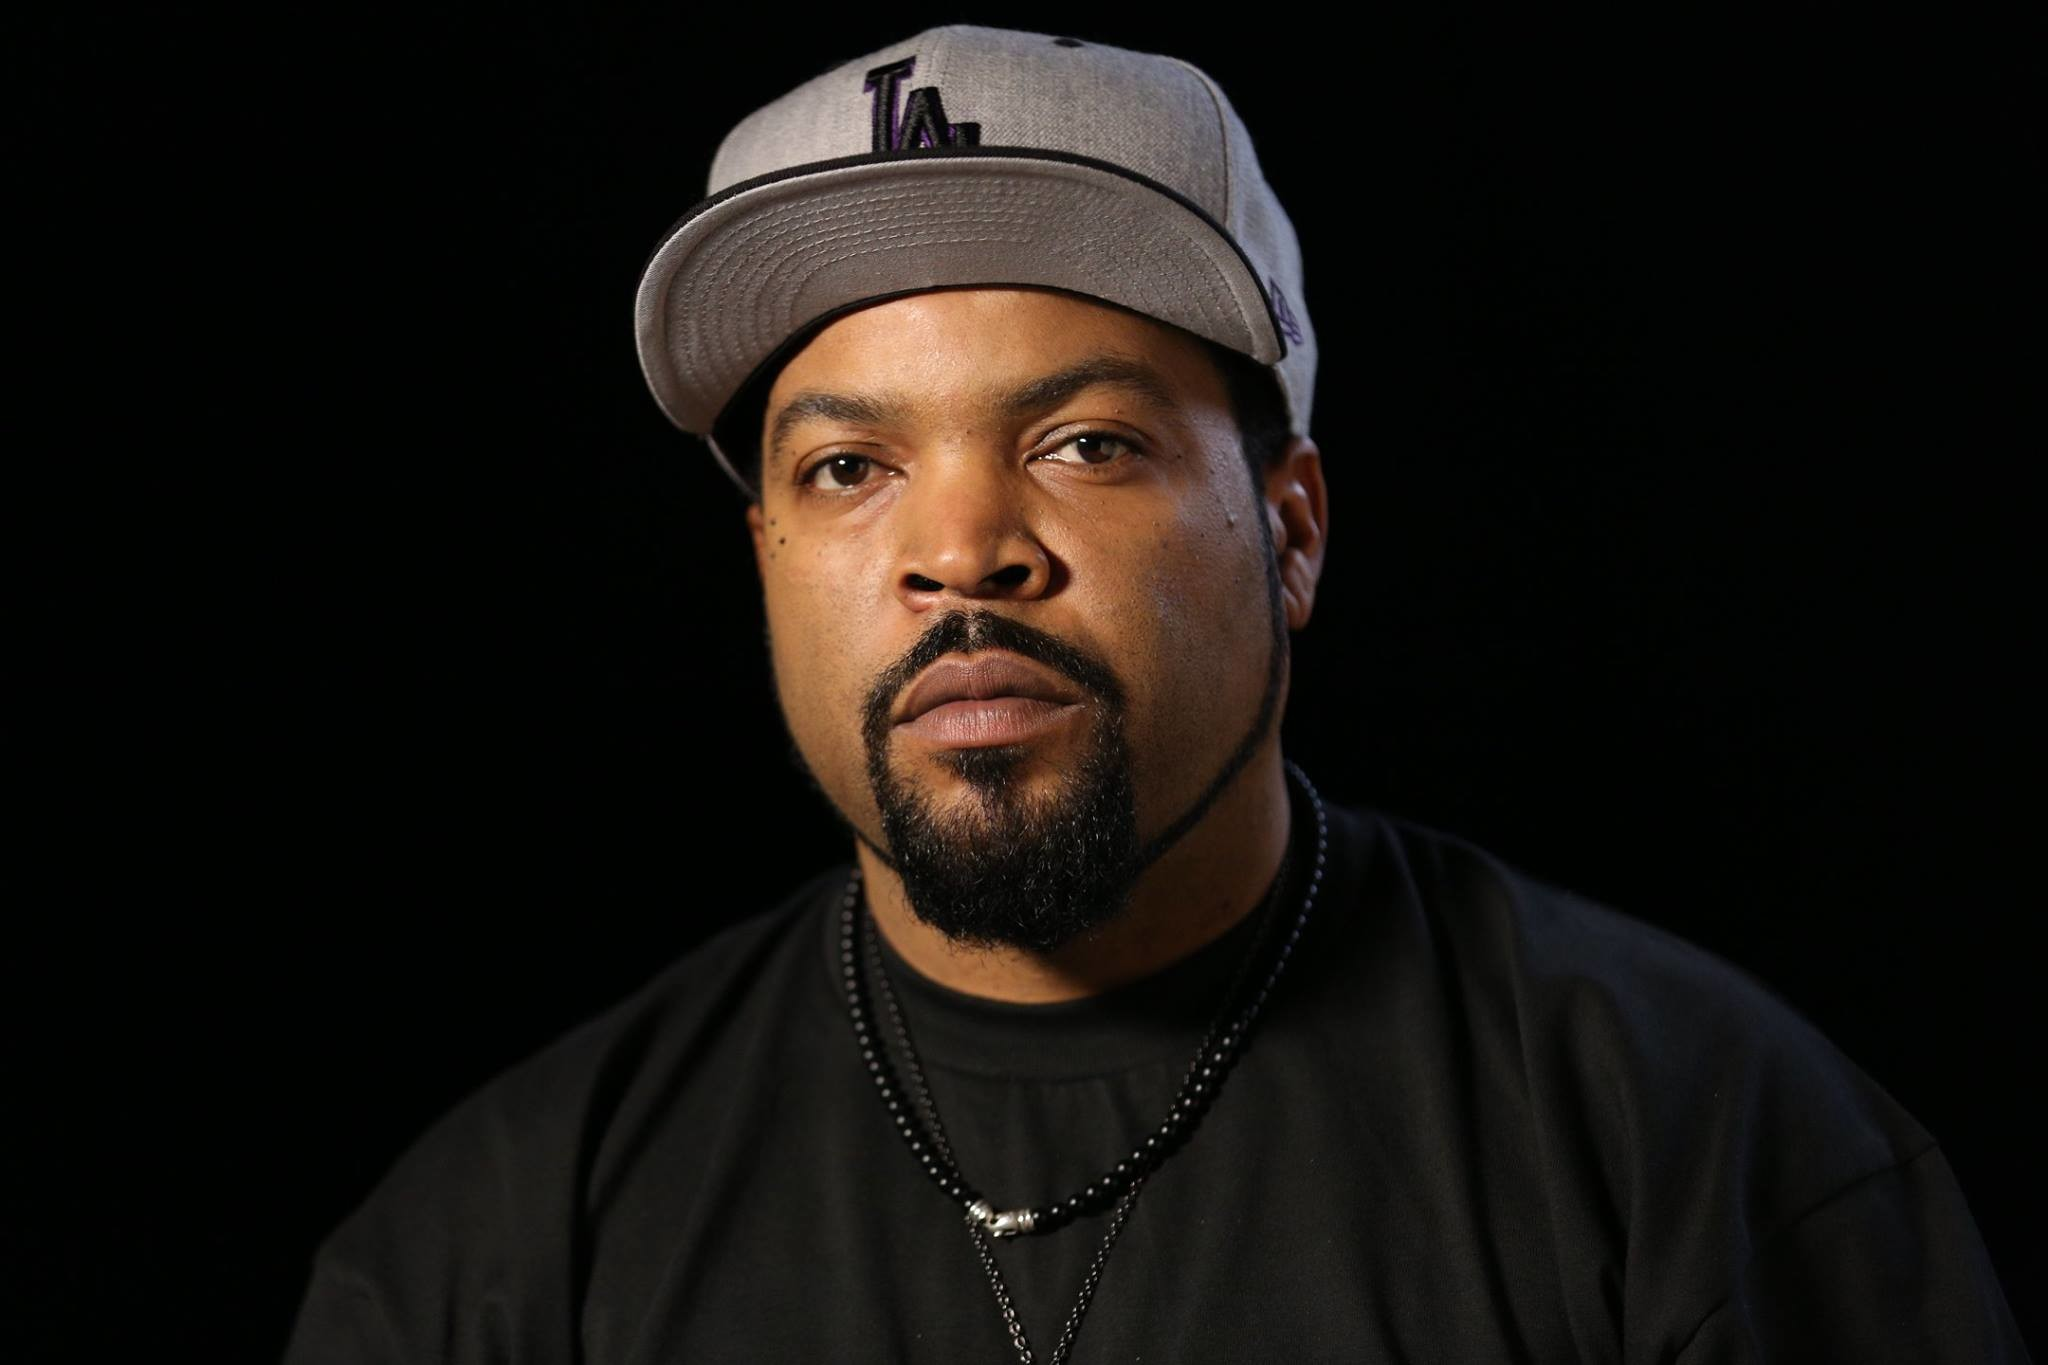 Entertainment News Latest Celebrity News, Videos & Photos 4 pictures 1 word ice cube map of america